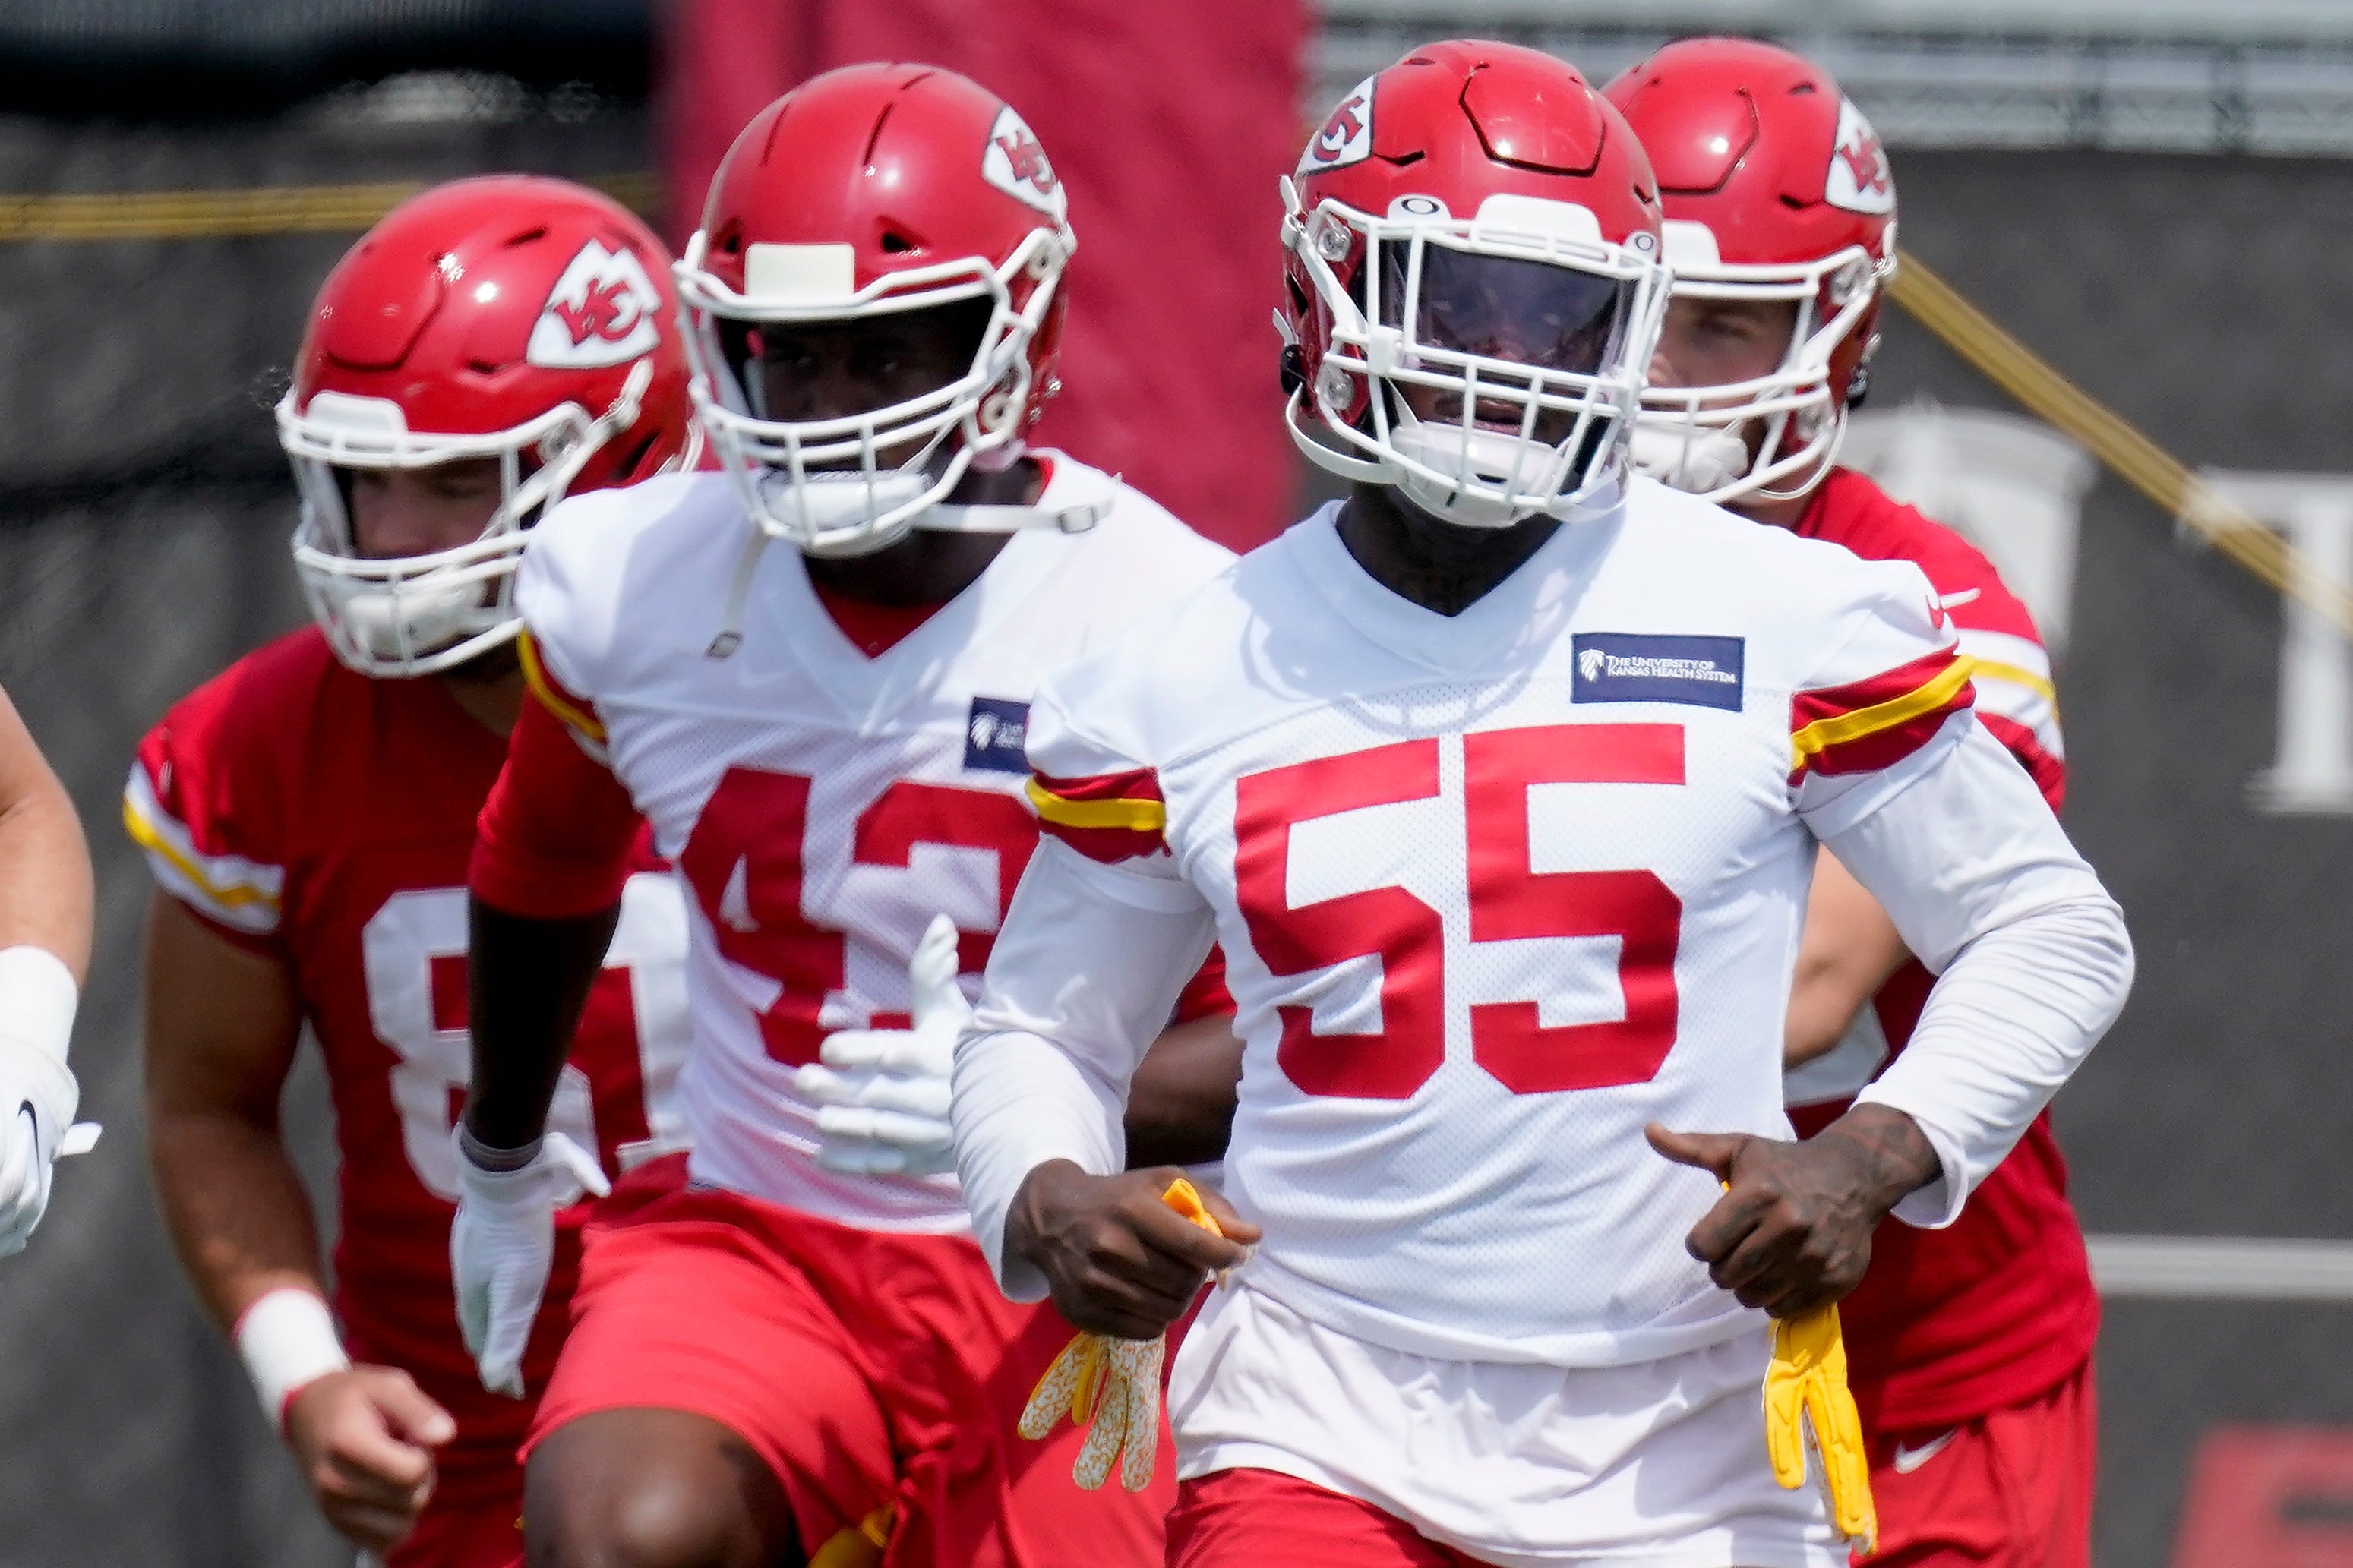 Chiefs Pro Bowl DE Frank Clark arrested for allegedly possessing Uzi in vehicle